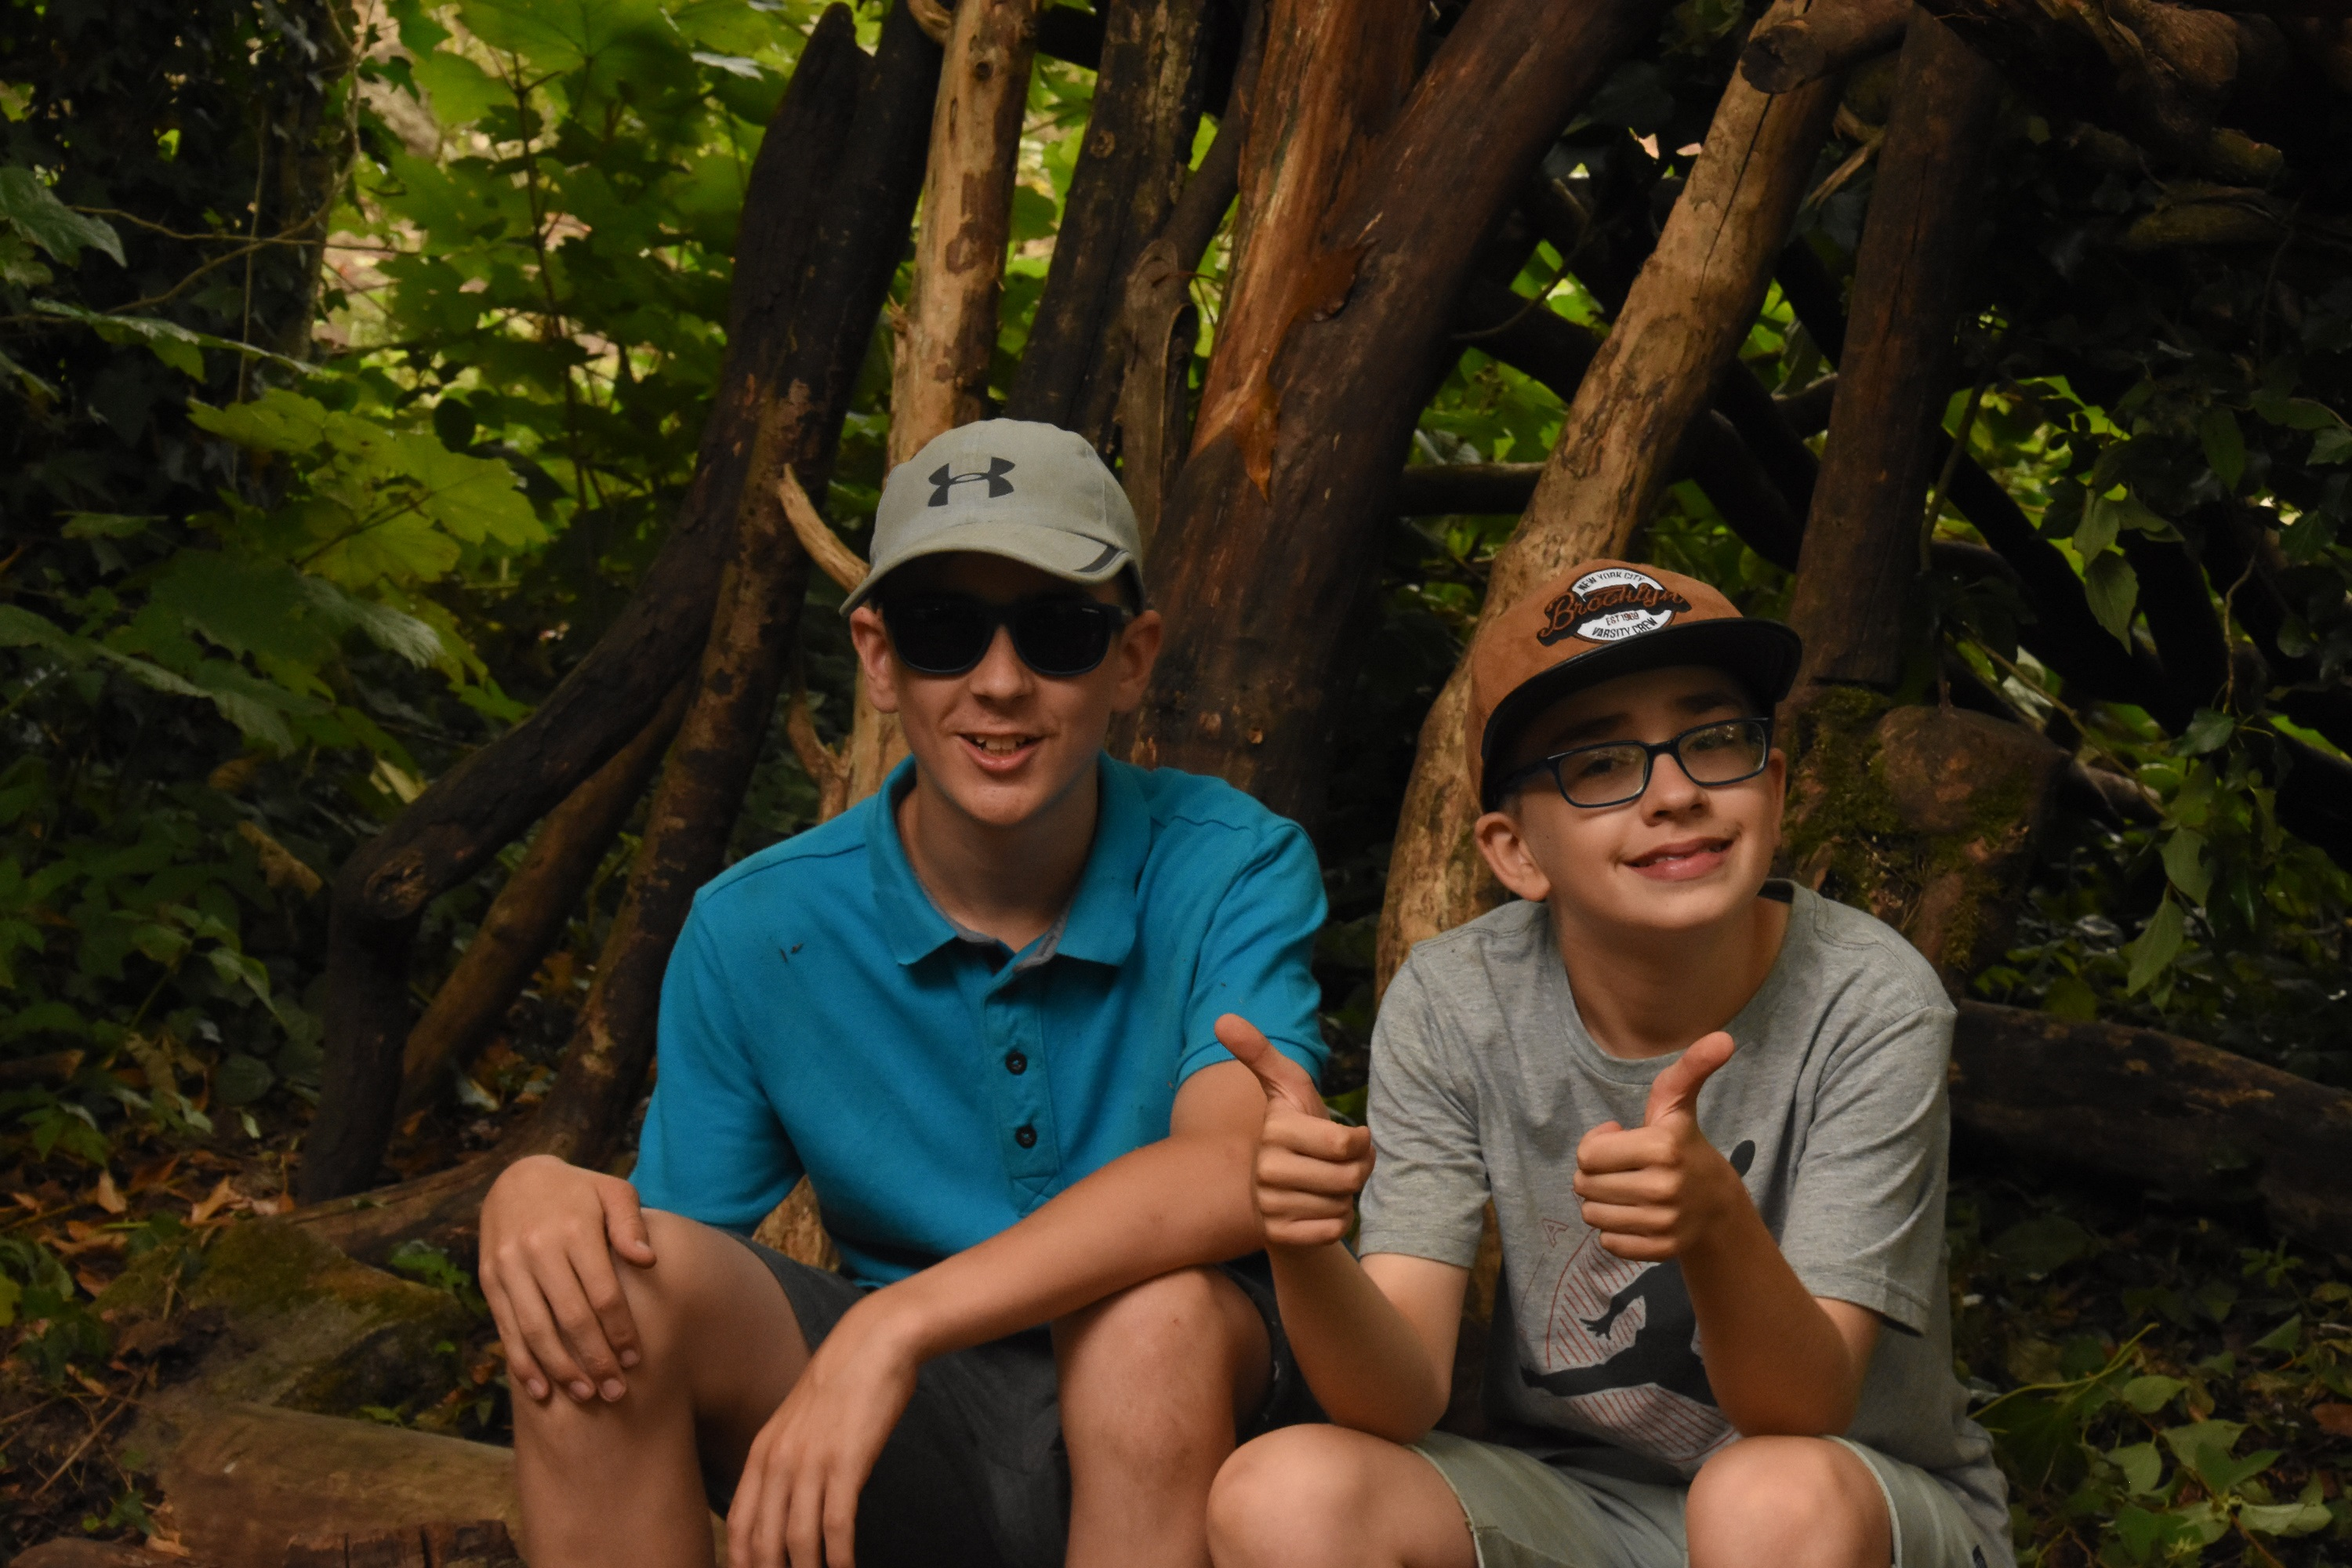 Image showing two young boys outdoors with thumbs up